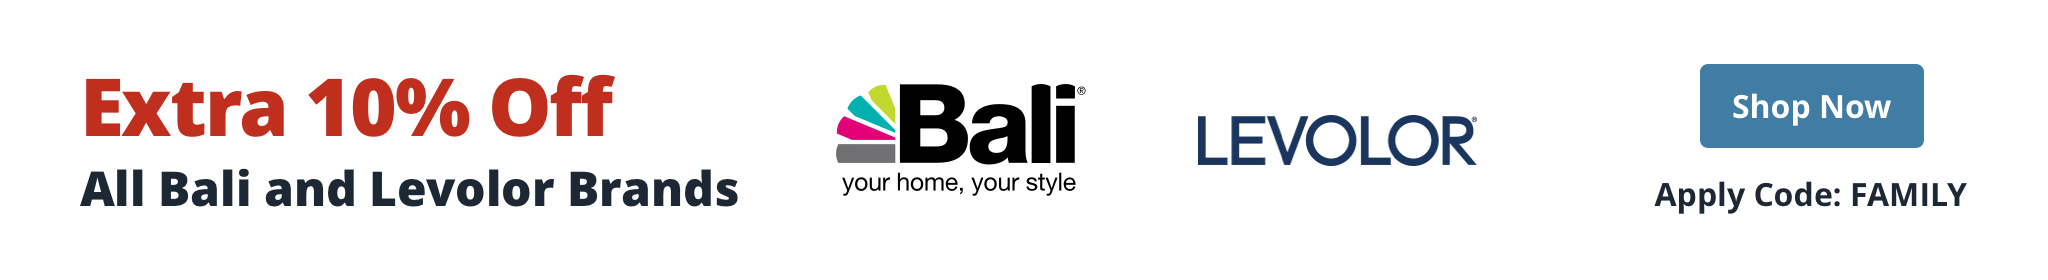 Save 10% Extra on Bali and Levolor